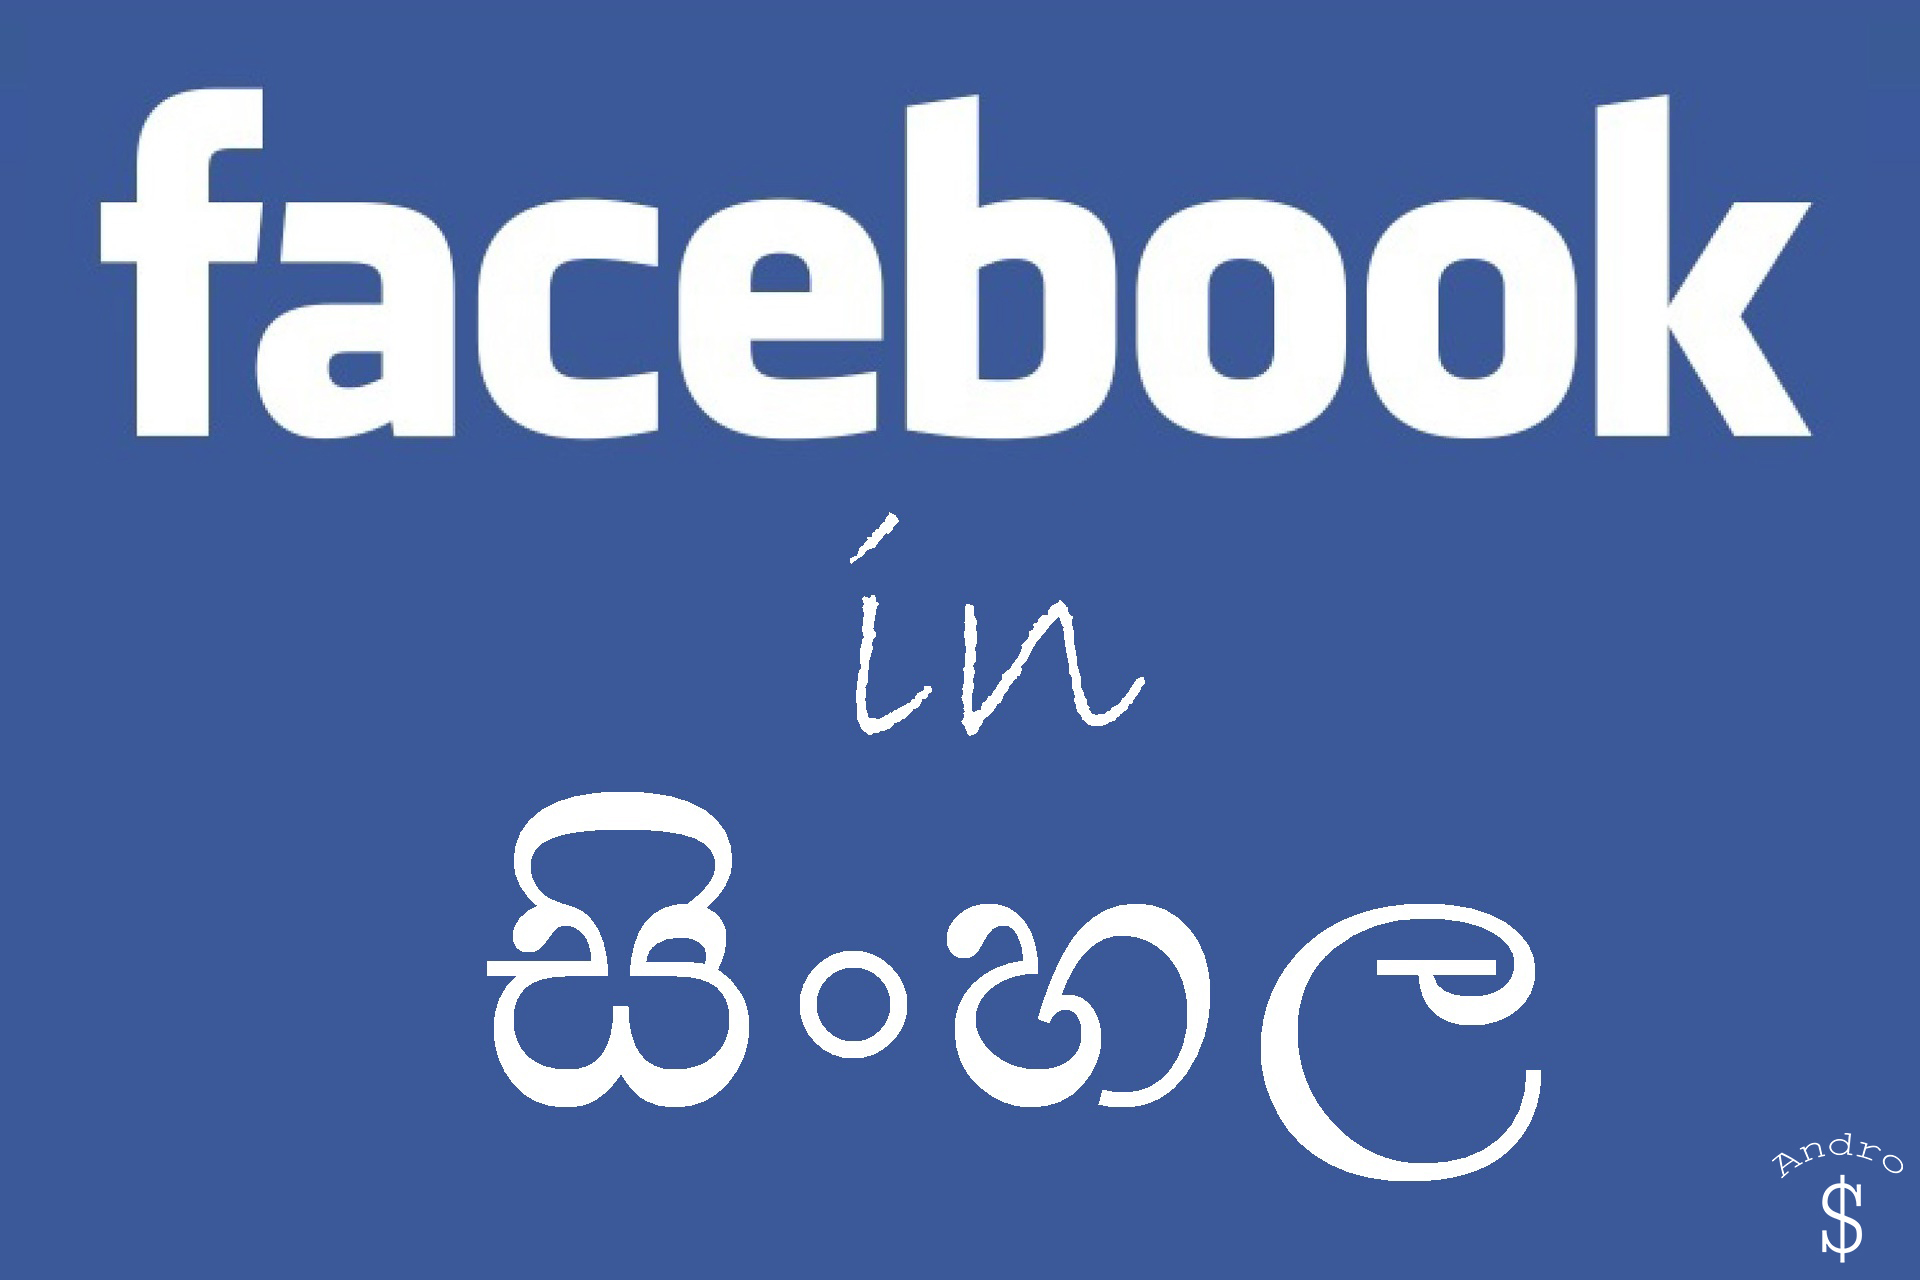 Use Facebook in Sinhala – Andro Dollar